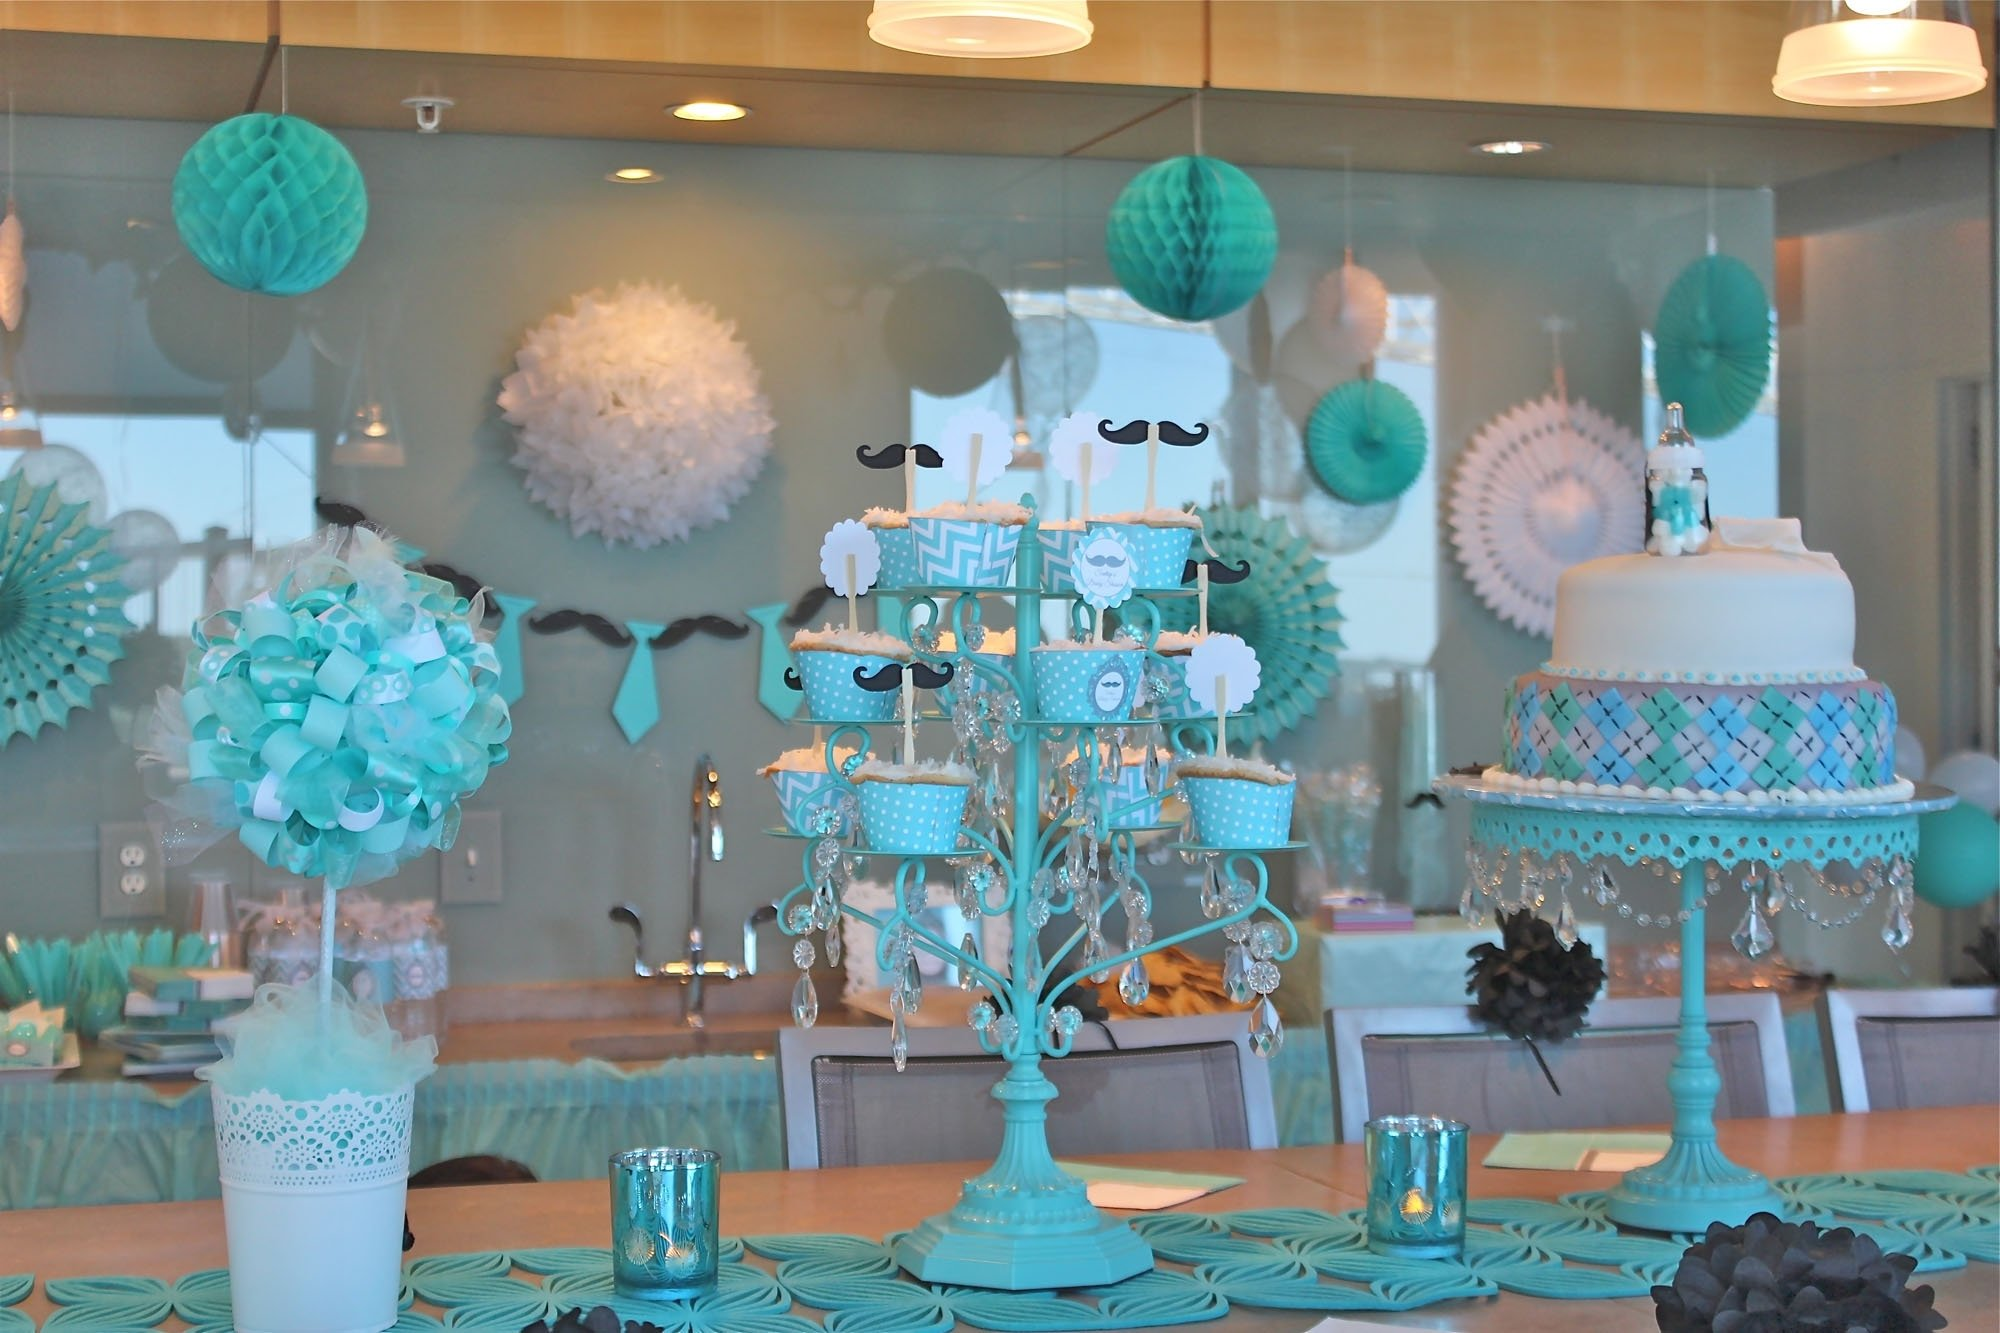 10 Gorgeous Ideas For Centerpieces For Baby Shower baby shower centerpiece ideas baby shower decoration ideas 1 2021